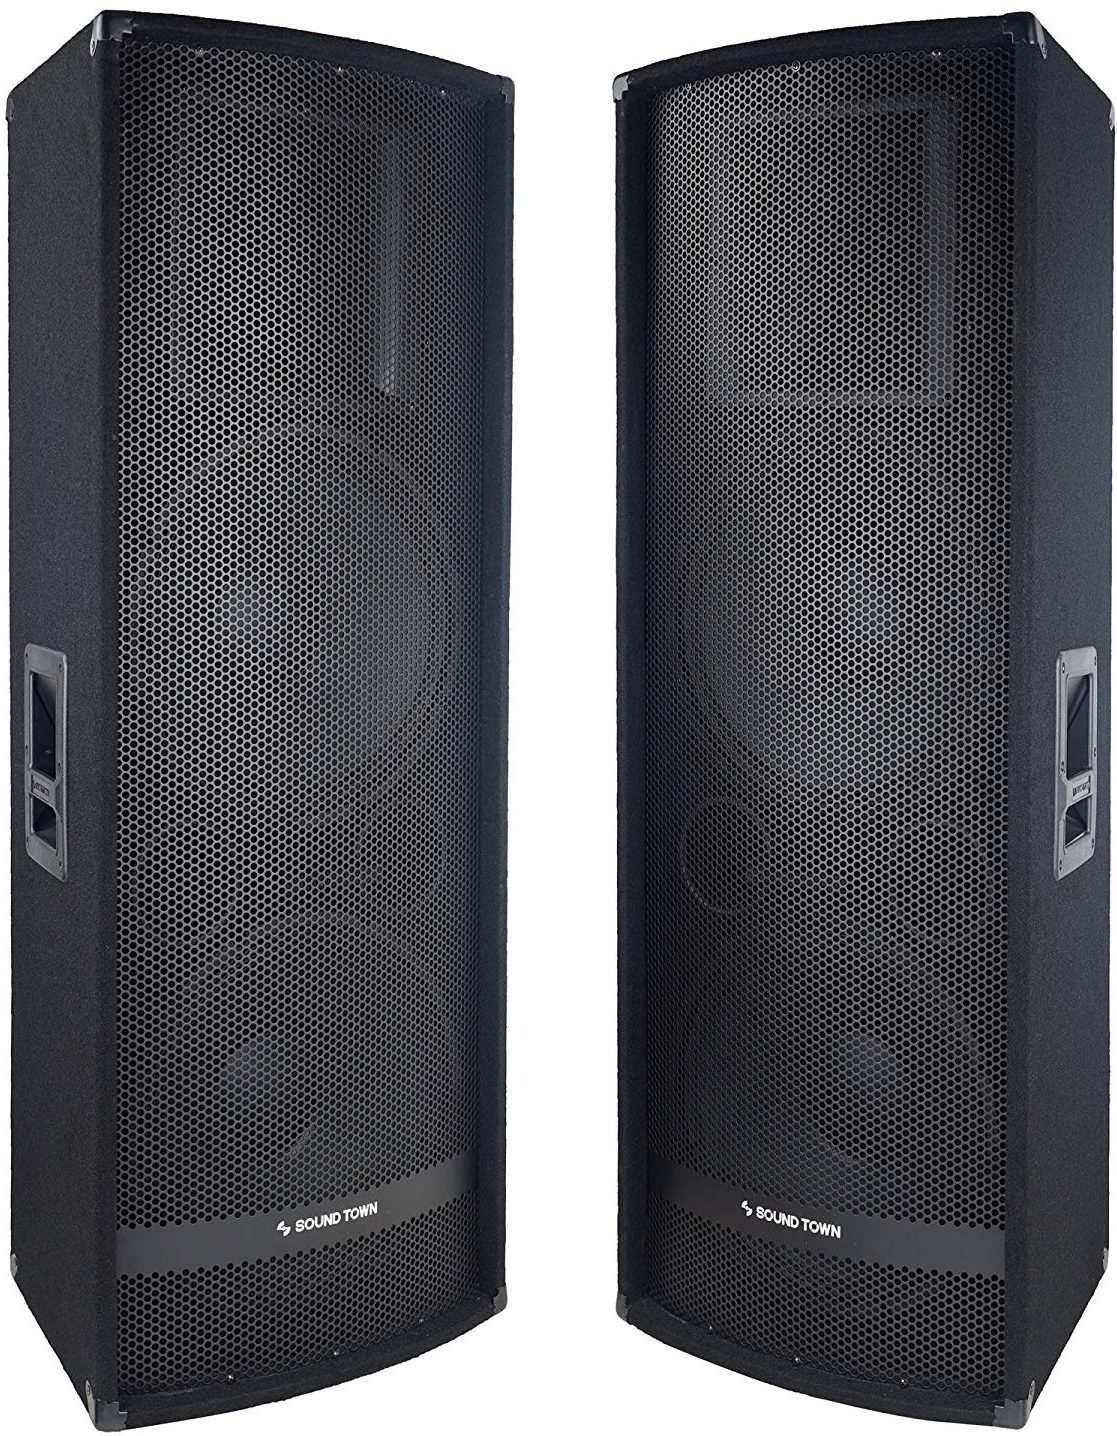 "Sound Town 2-Pack Dual 15"" 2800W - DJ Speakers"